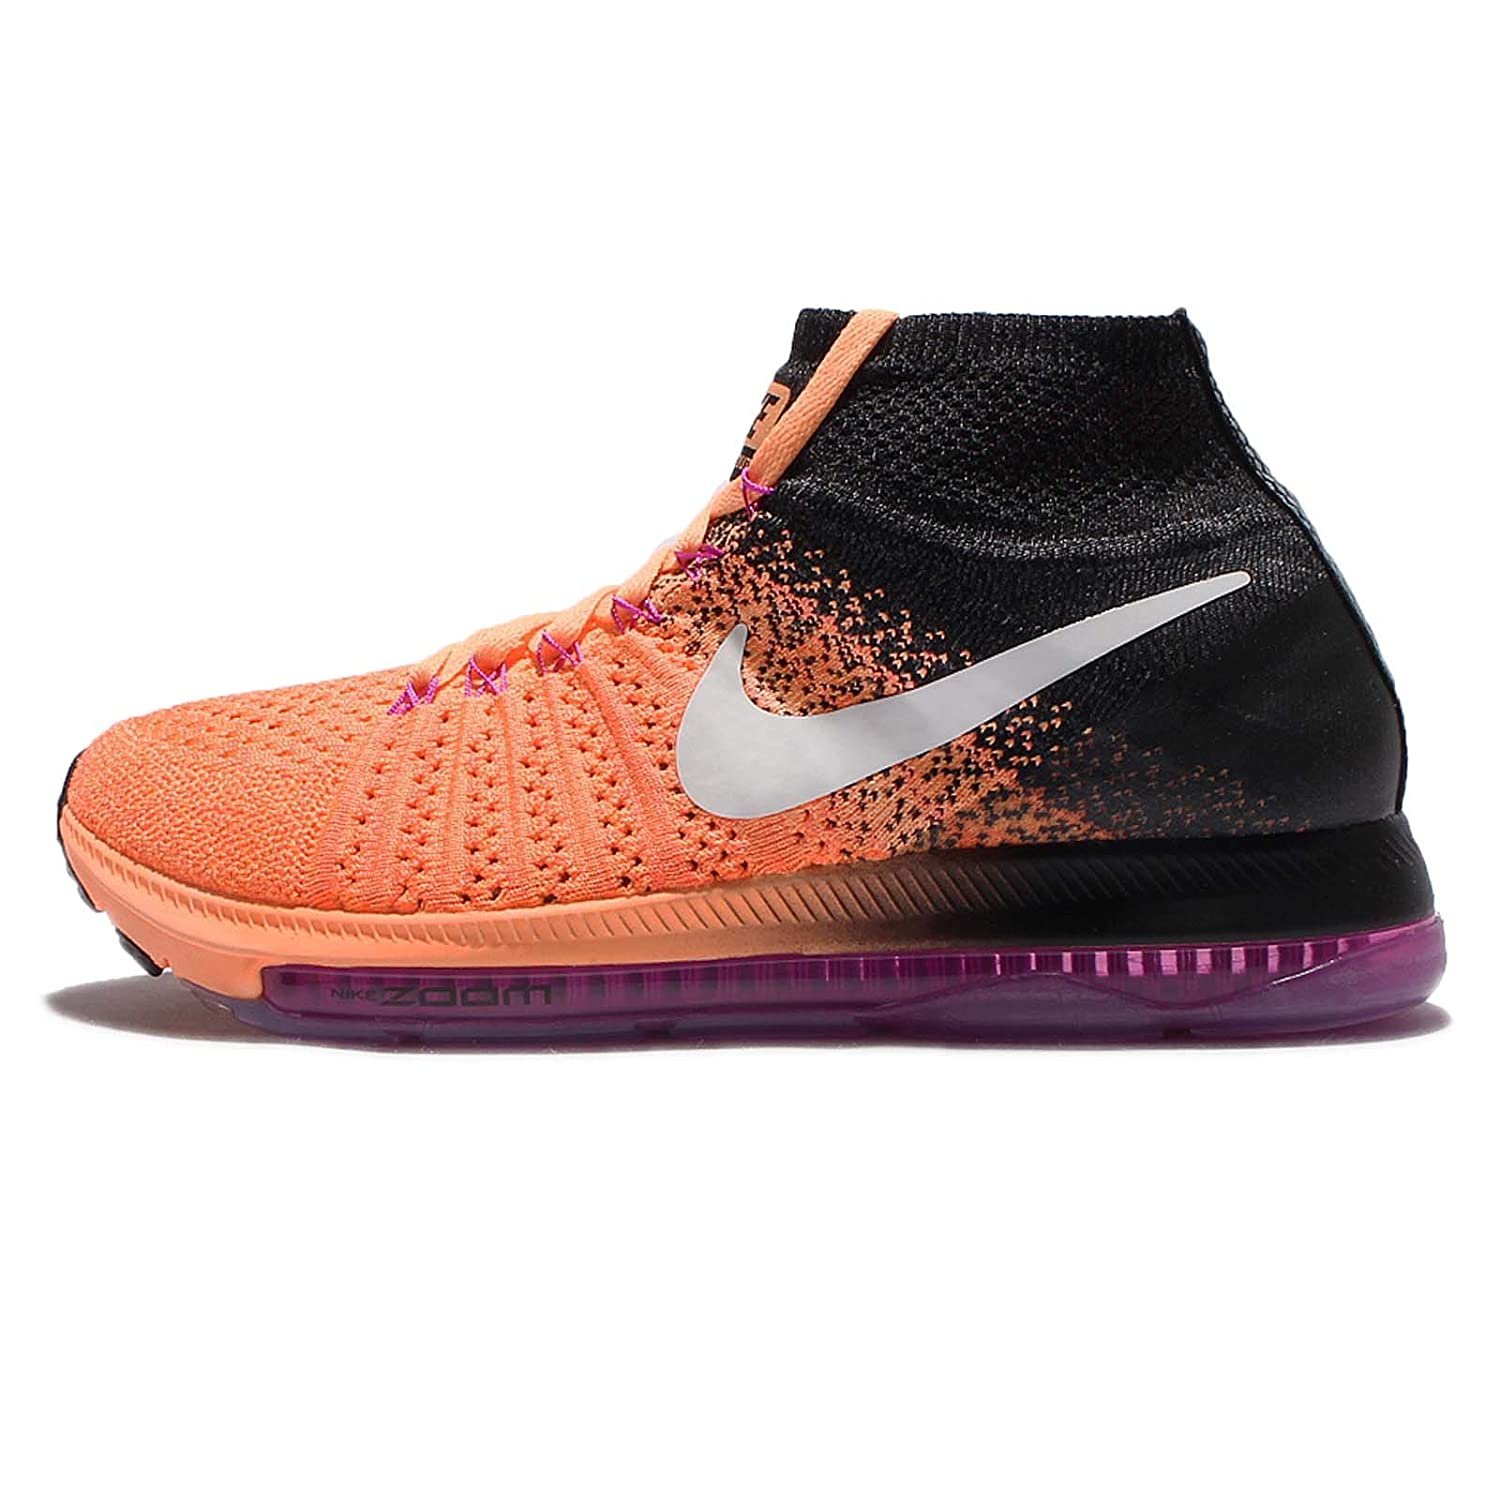 Nike Women's Zoom All Out Flyknit Running Shoes B01M0KVBTQ 8 B(M) US|Peach Cream/White-black